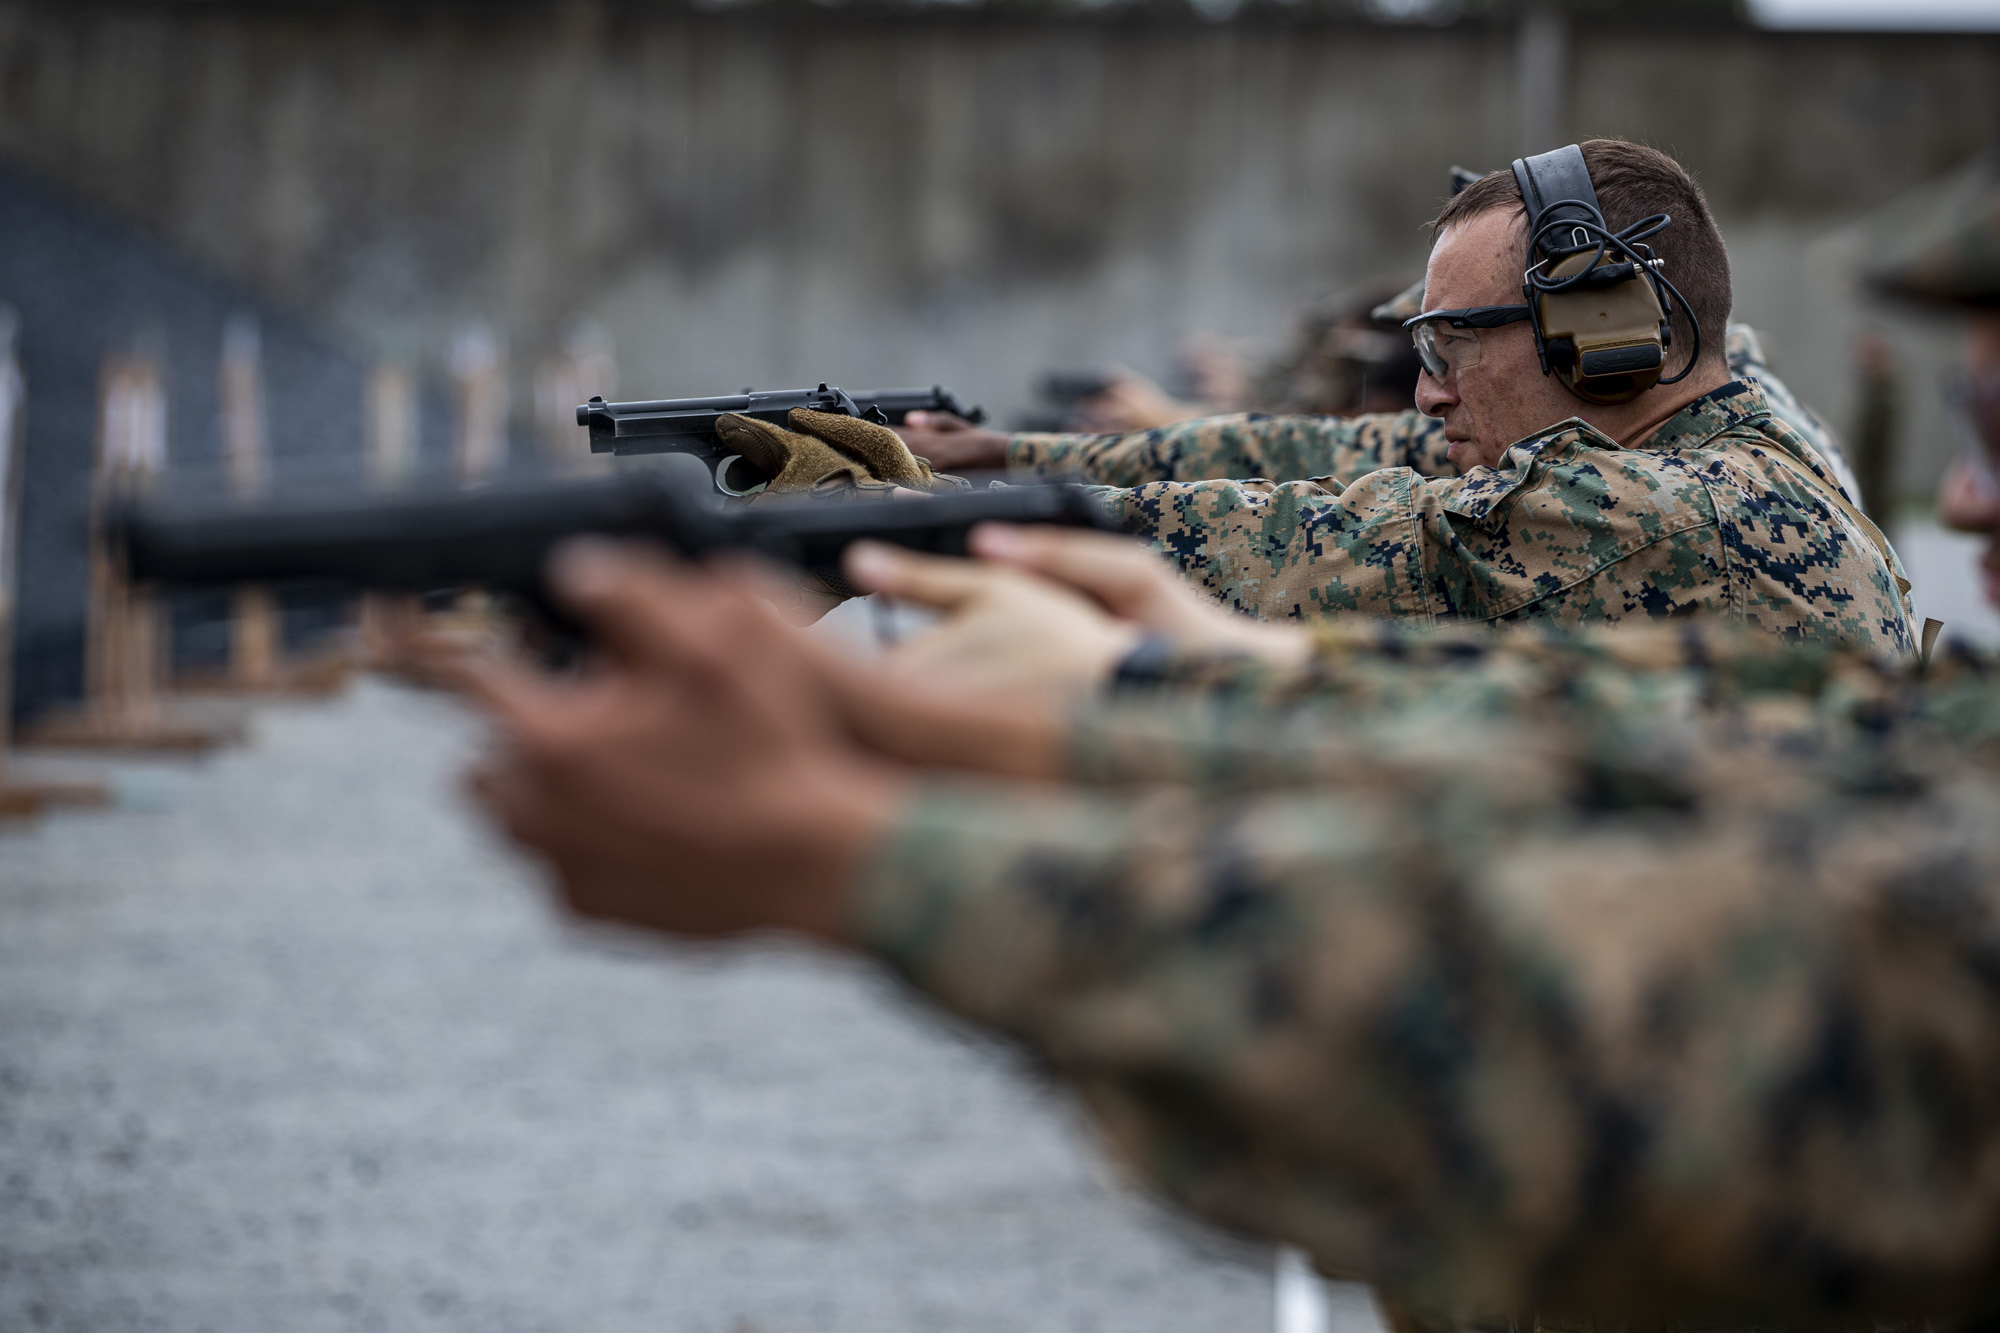 Gunnery Sgt. Nathaniel Schoenhoefer takes aim during the 2020 Far East Intramural Matches on Camp Hansen, Okinawa, Japan, Dec. 10, 2020. (Lance Cpl. Zachary Larsen/Marine Corps)